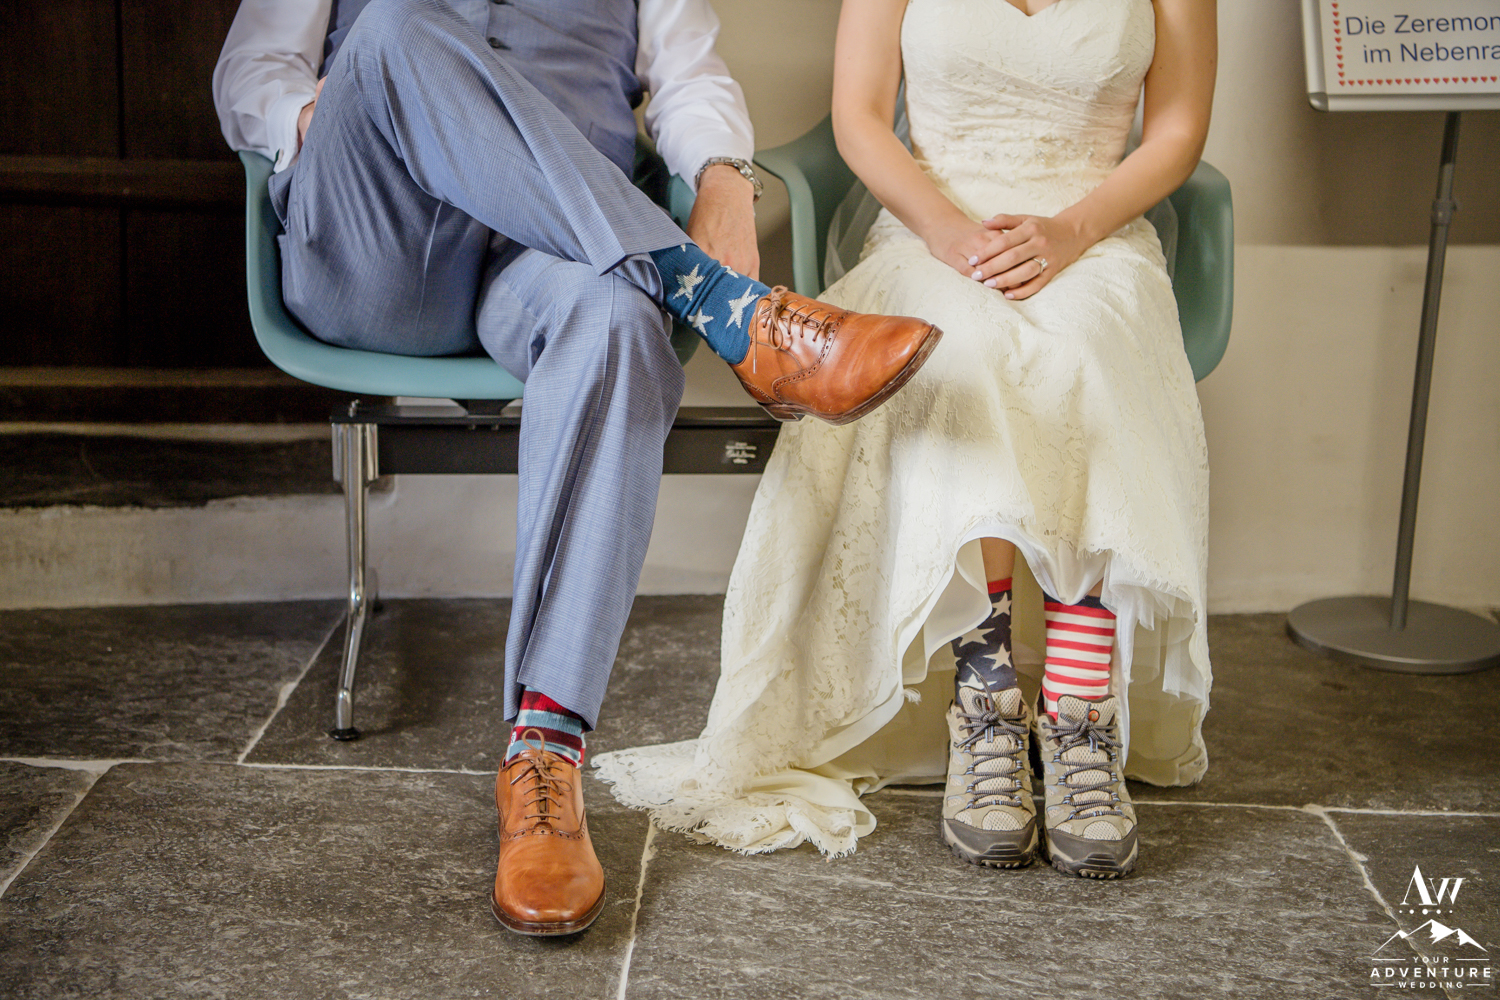 Couple waiting for their legal ceremony in Switzerland